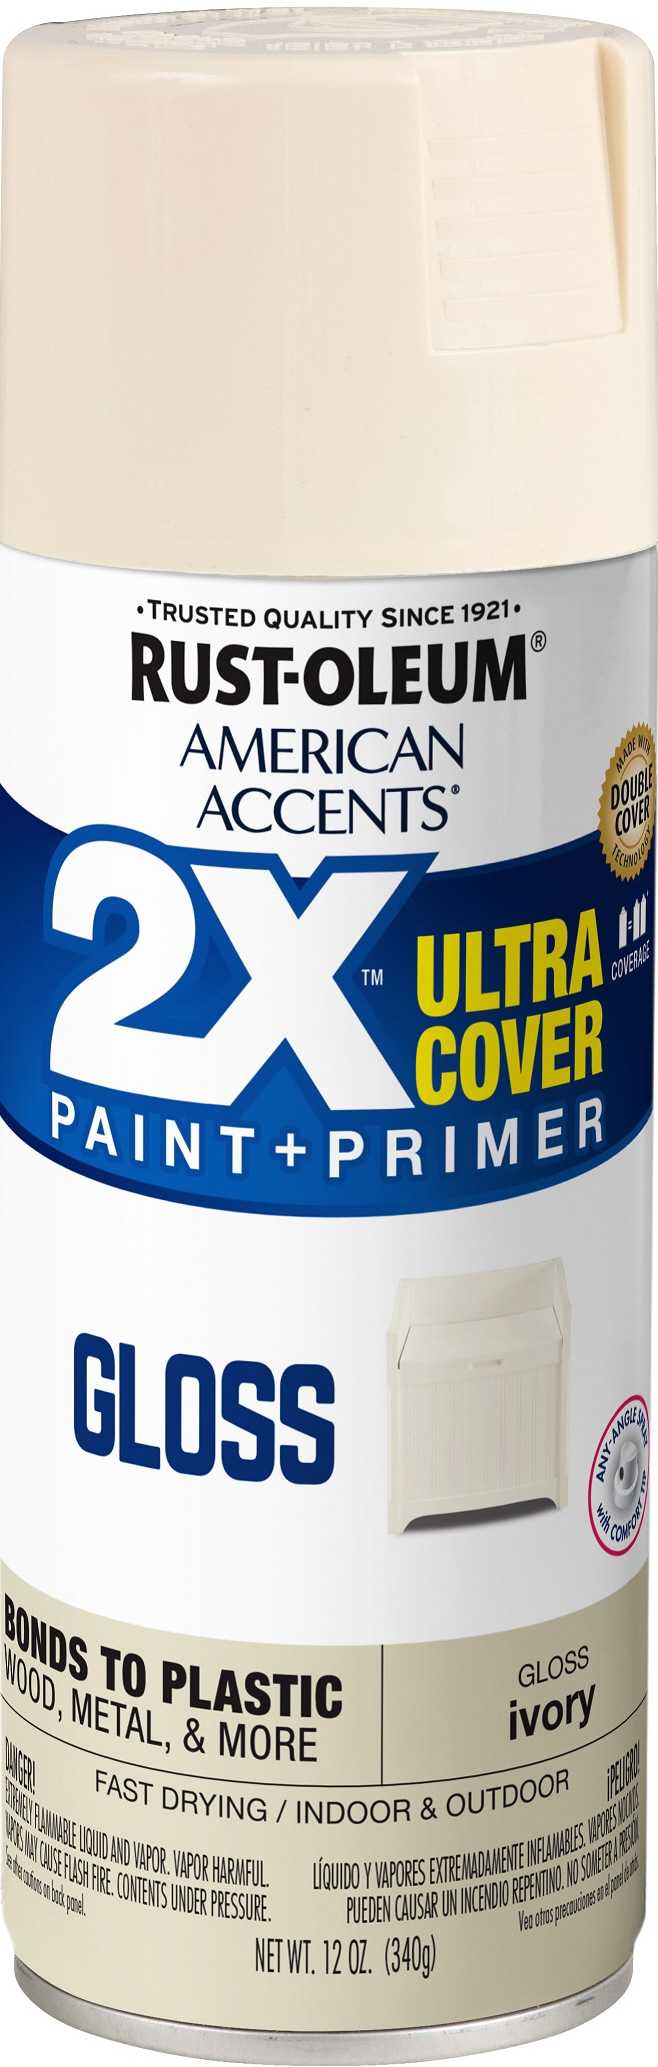 (3 Pack) Rust-Oleum American Accents Ultra Cover 2X Gloss Ivory Spray Paint and Primer in 1, 12 oz